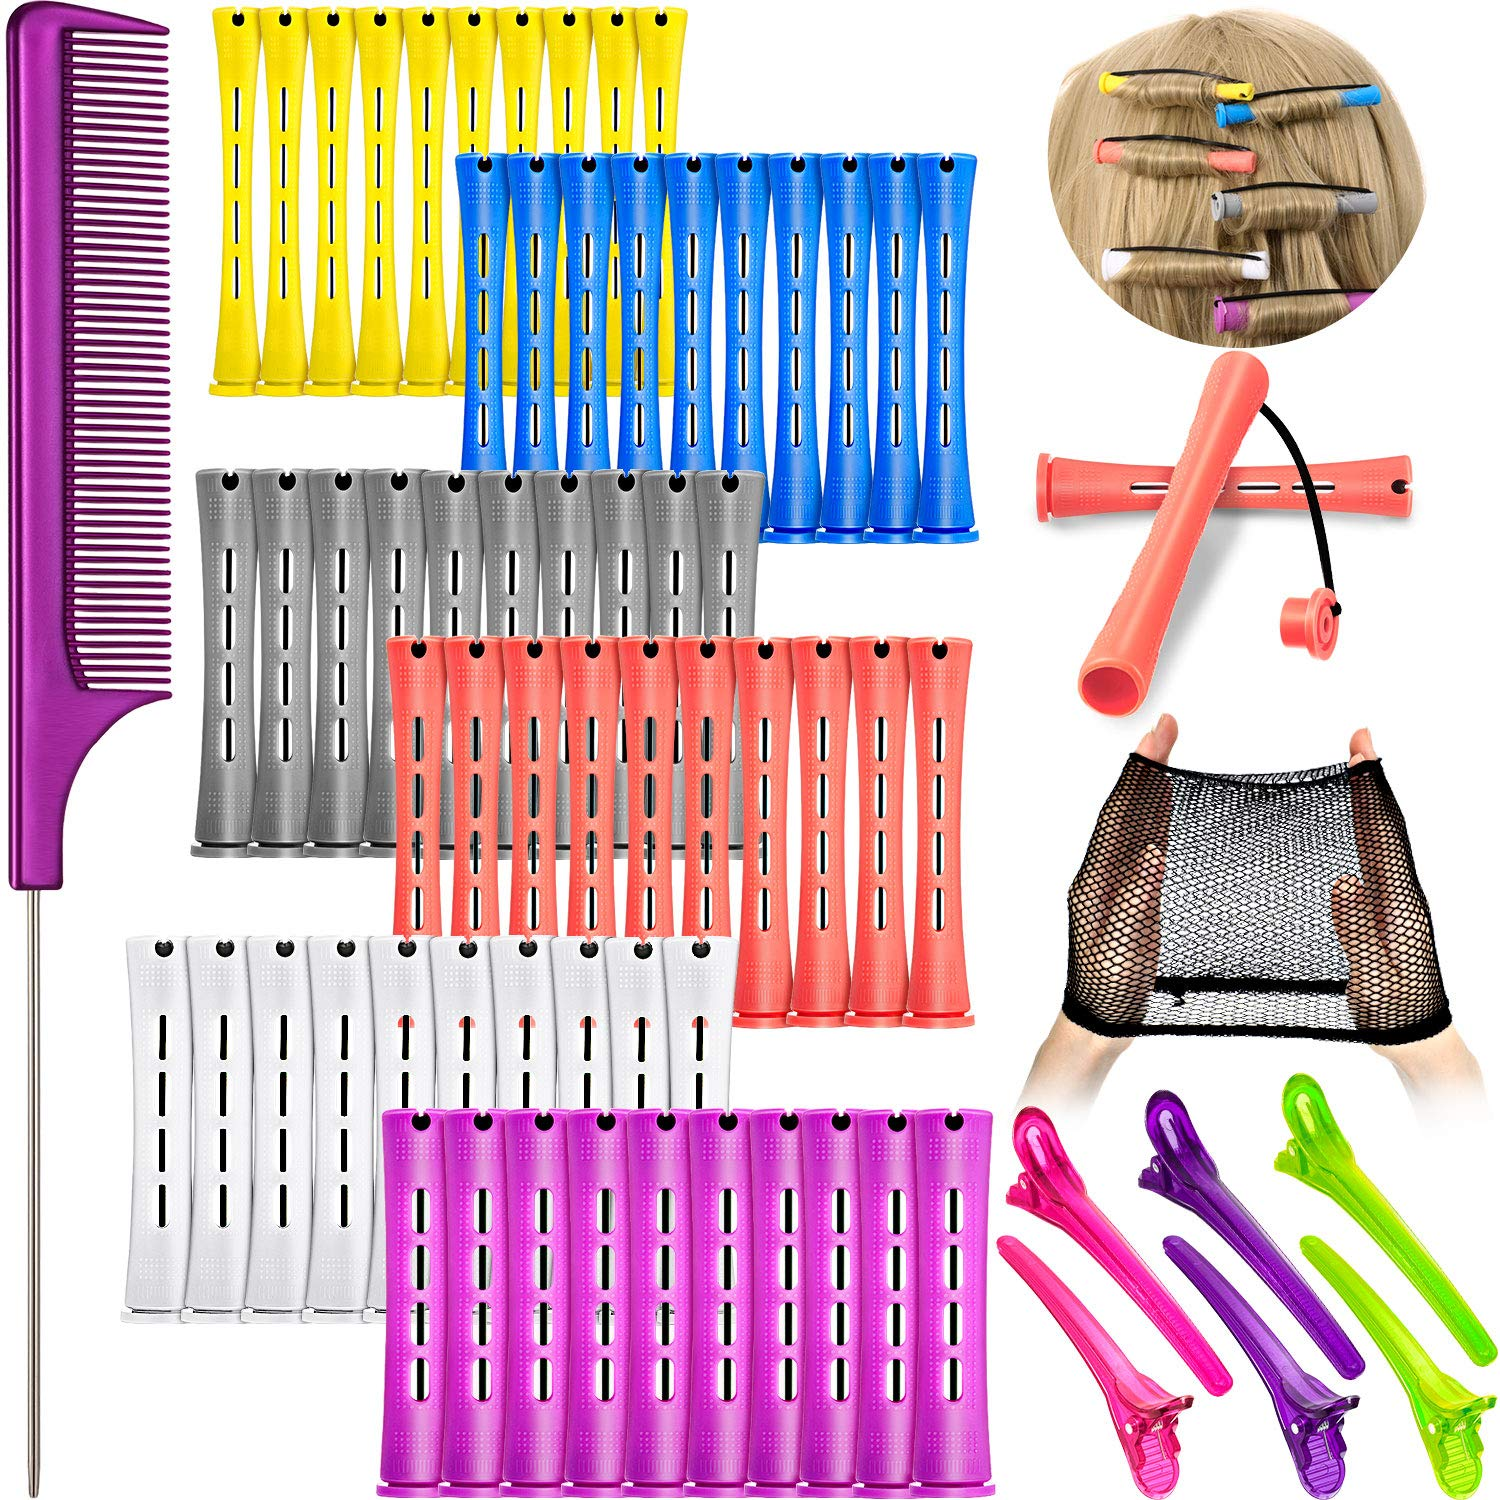 72 Pieces Hair Perm Rods Set Plastic Perming Rods Cold Wave Rods 6 Sizes Hair Curling Rollers with Steel Rat Tail Comb, Wig Cap, 6 Pieces Duck Teeth Hair Clips for Hairdressing Hair Styling